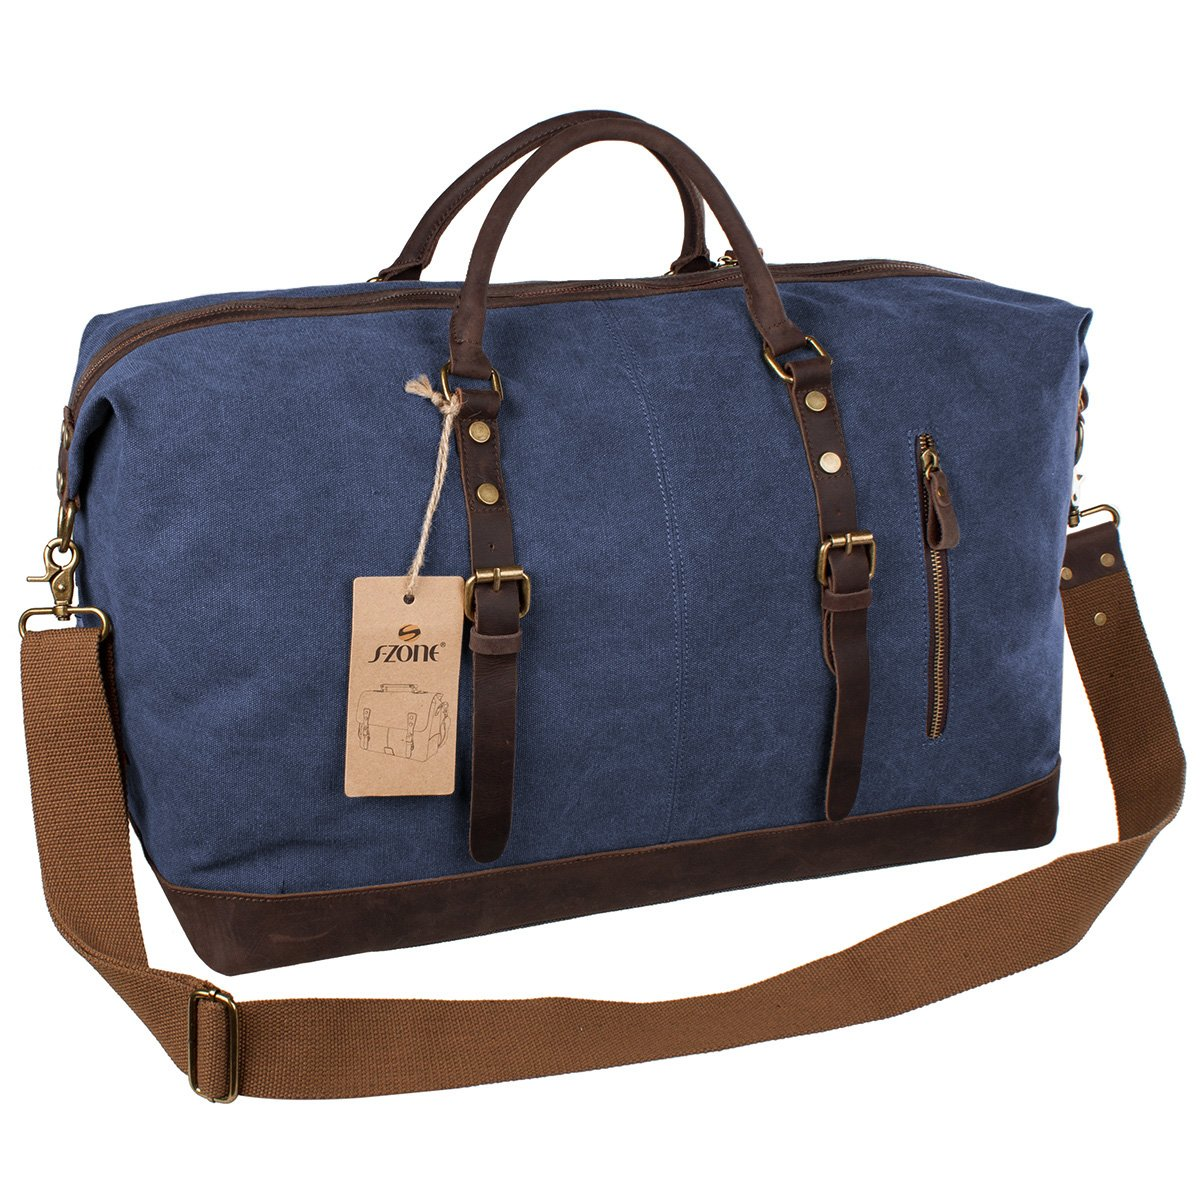 c39af827b46b S-ZONE Mens Canvas Leather Holdall Travel Duffle Overnight Weekend Satchel Totes  Bag Handbags (Blue)  Amazon.co.uk  Luggage